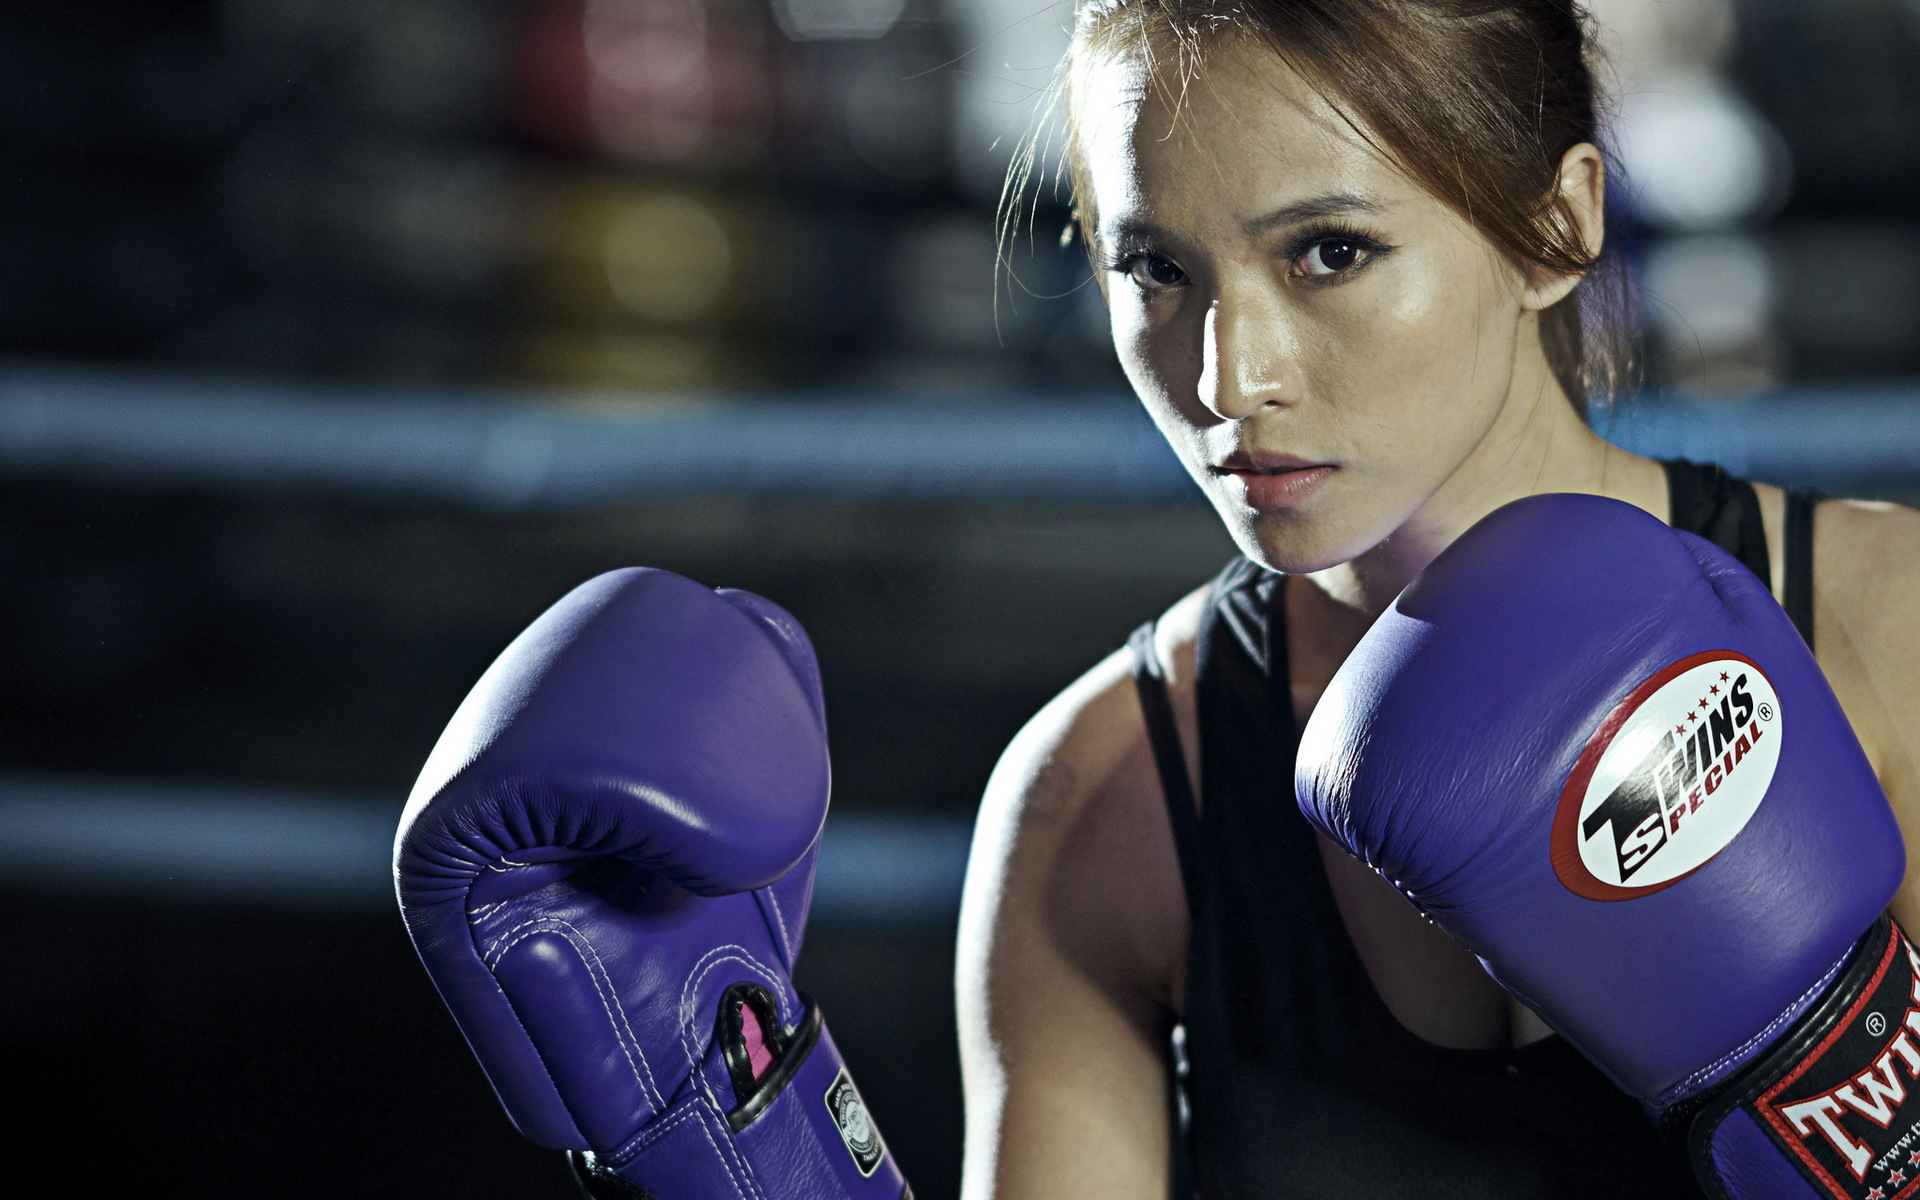 Boxing Girl, HD Girls, 4k Wallpapers, Images, Backgrounds